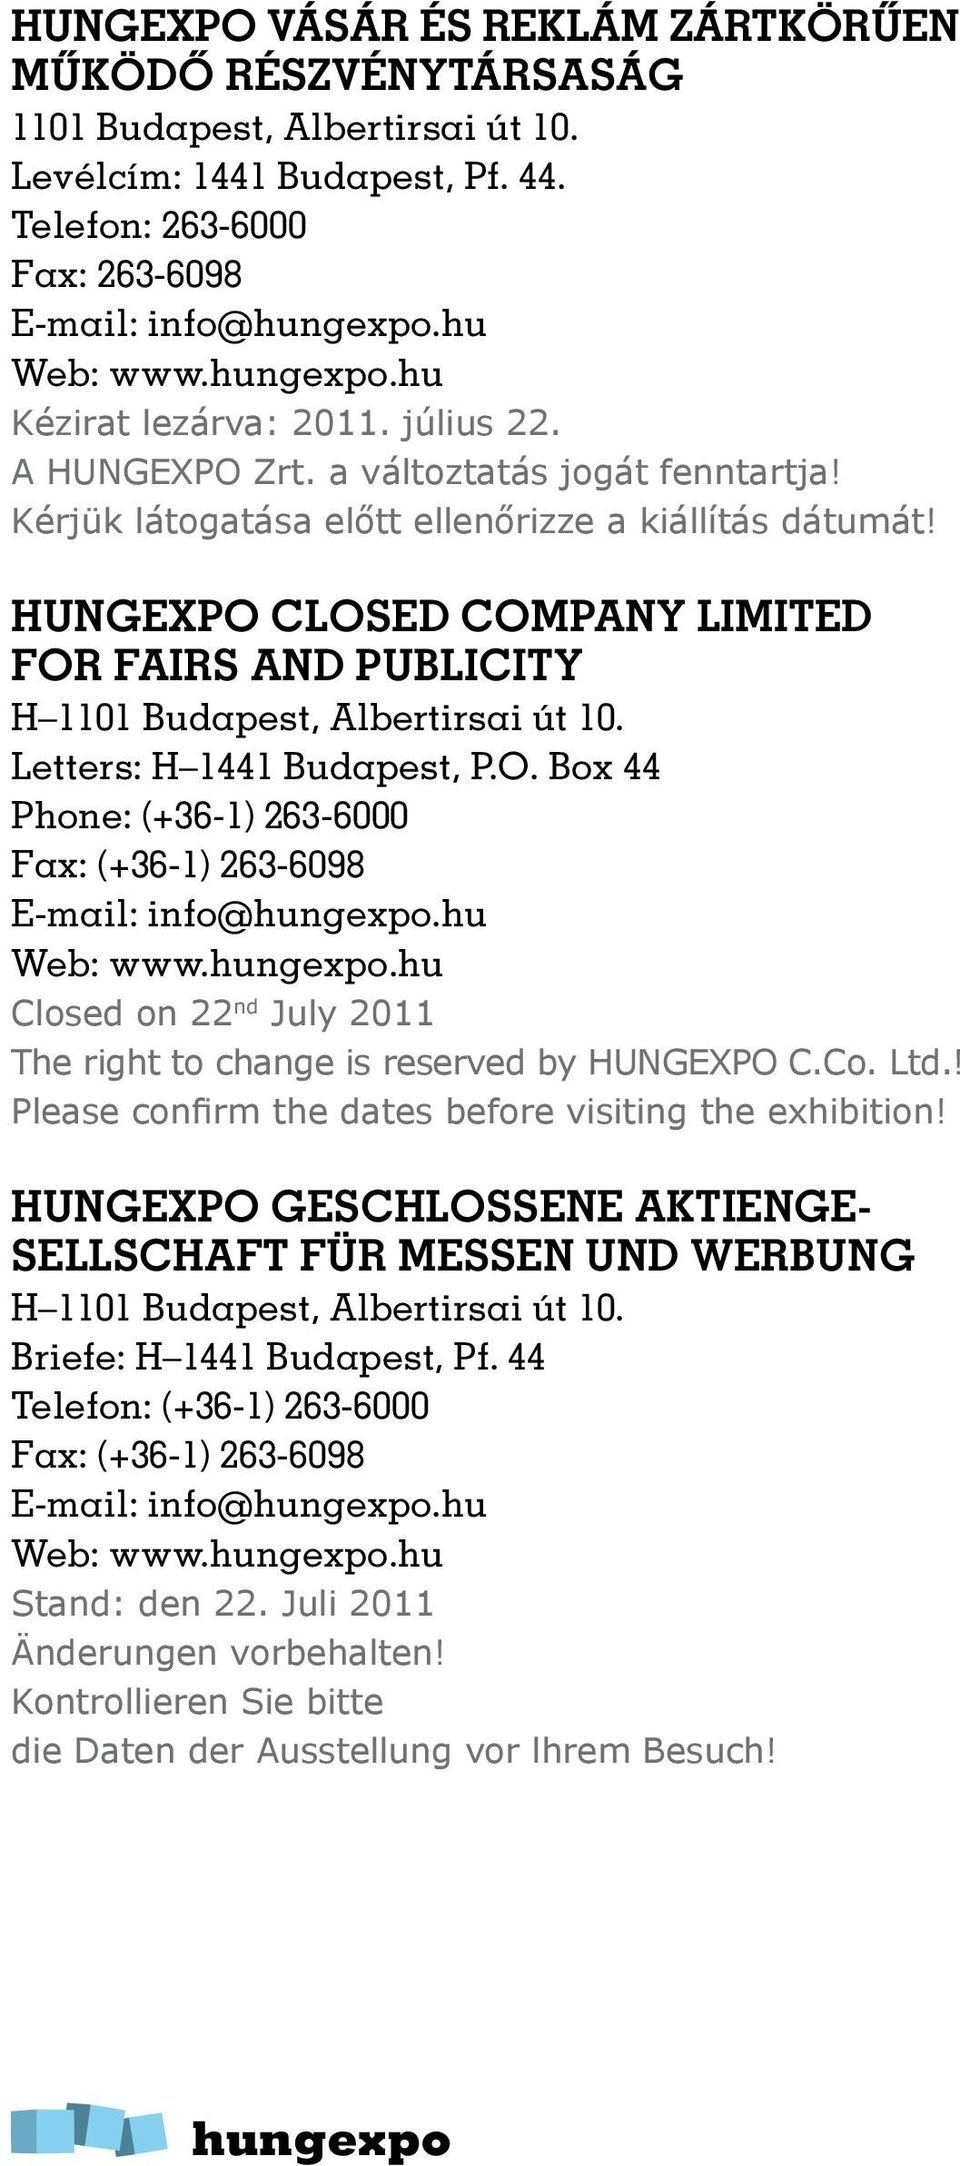 HUNGEXPO CLOSED COMPANY LIMITED FOR FAIRS AND PUBLICITY H 1101 Budapest, Albertirsai út 10. Letters: H 1441 Budapest, P.O. Box 44 Phone: (+36-1) 263-6000 Fax: (+36-1) 263-6098 E-mail: info@.